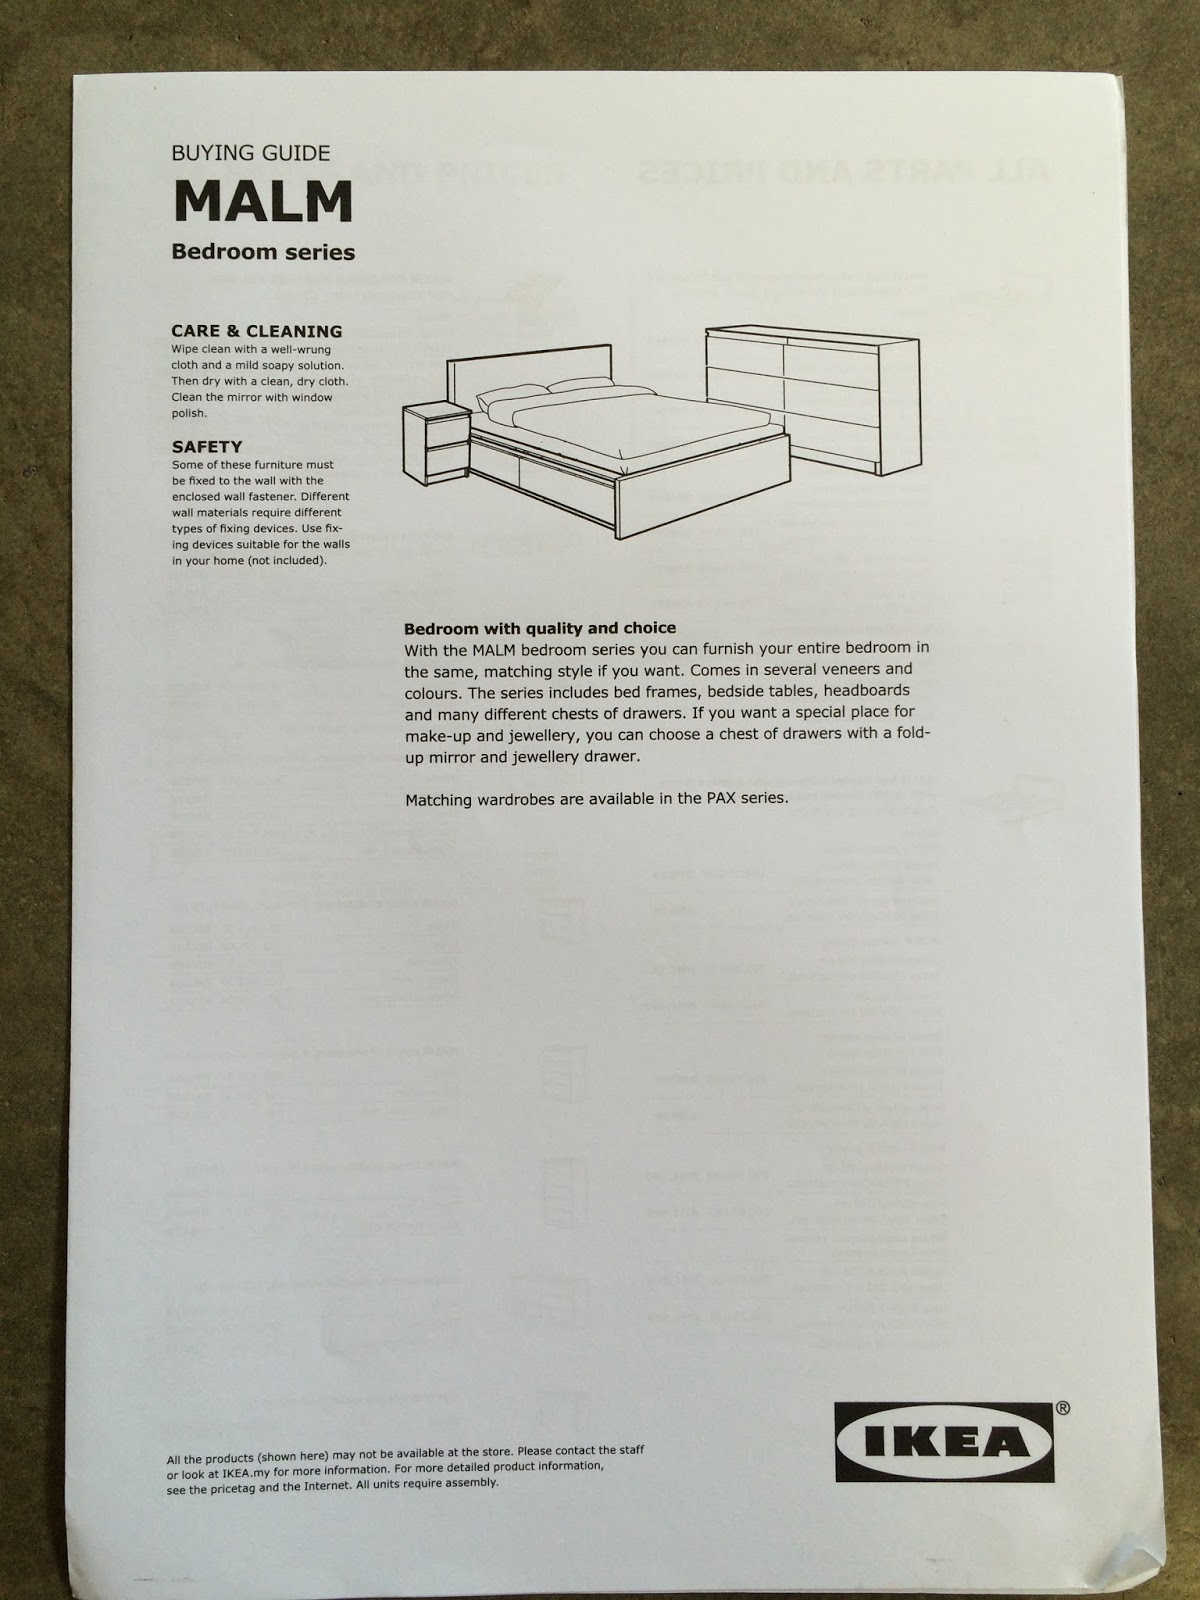 Parse906 Ikea Black And White Brochure Ve Used To Build This Circuitclick It For Higher Resolution Image Wednesday September 7 2016